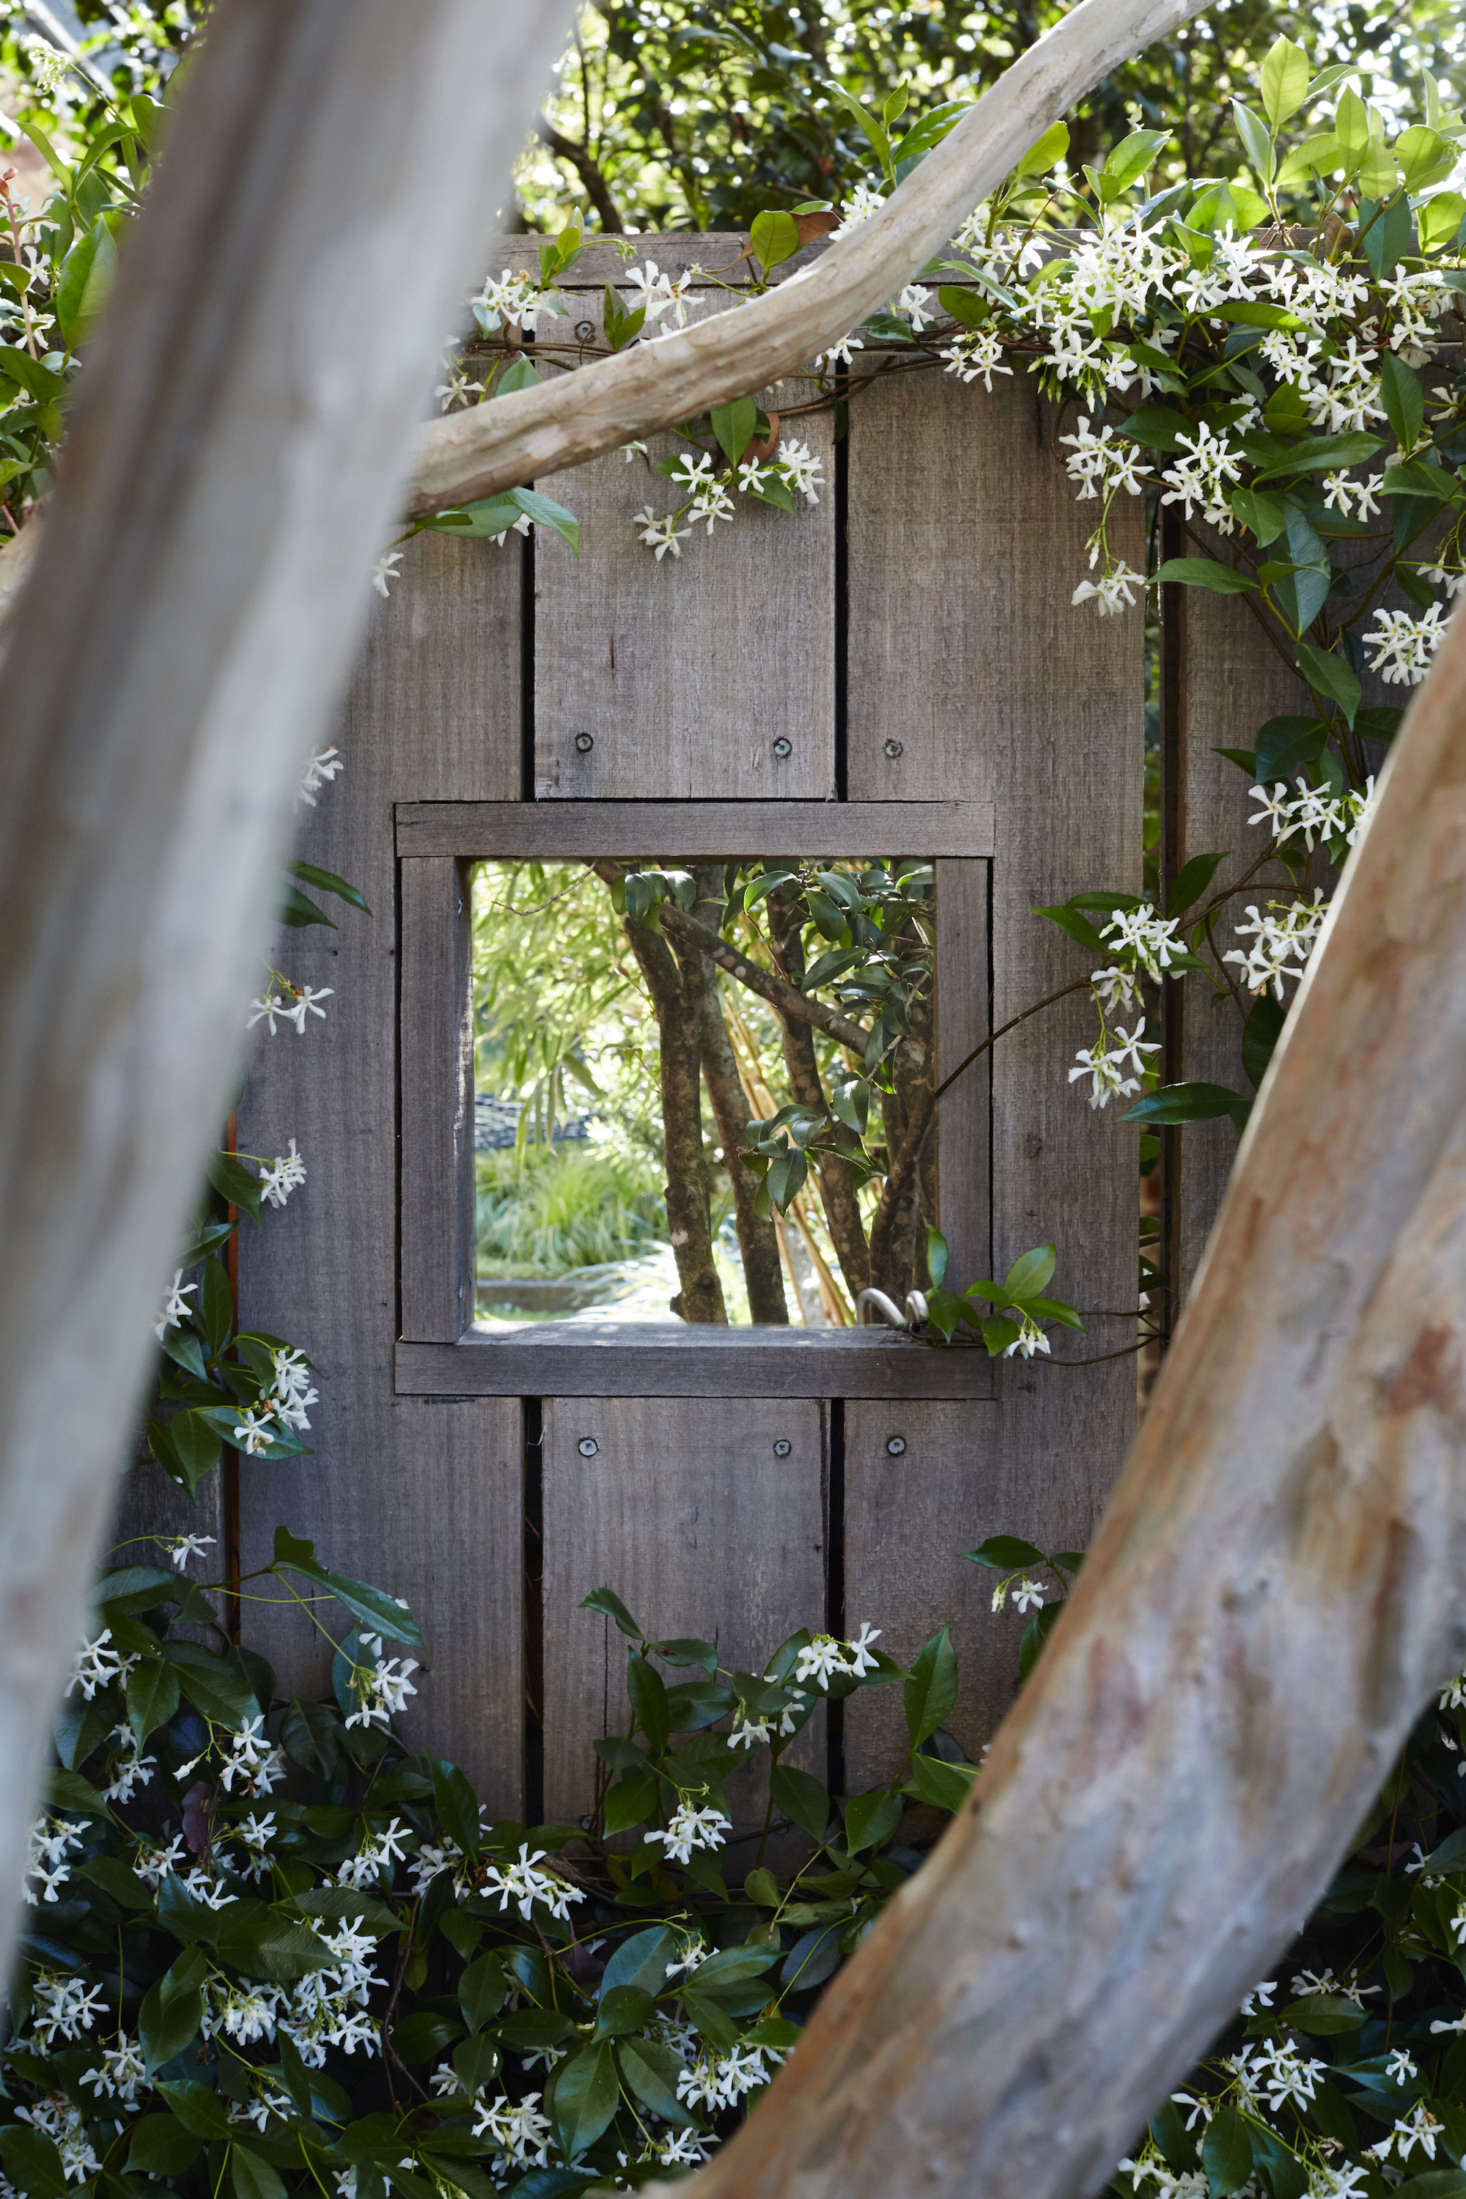 Star jasmine frames a square peep-hole cut into the rough-sawn Australian hardwood fence at the front of property, which gives passersby a glimpse into the garden.